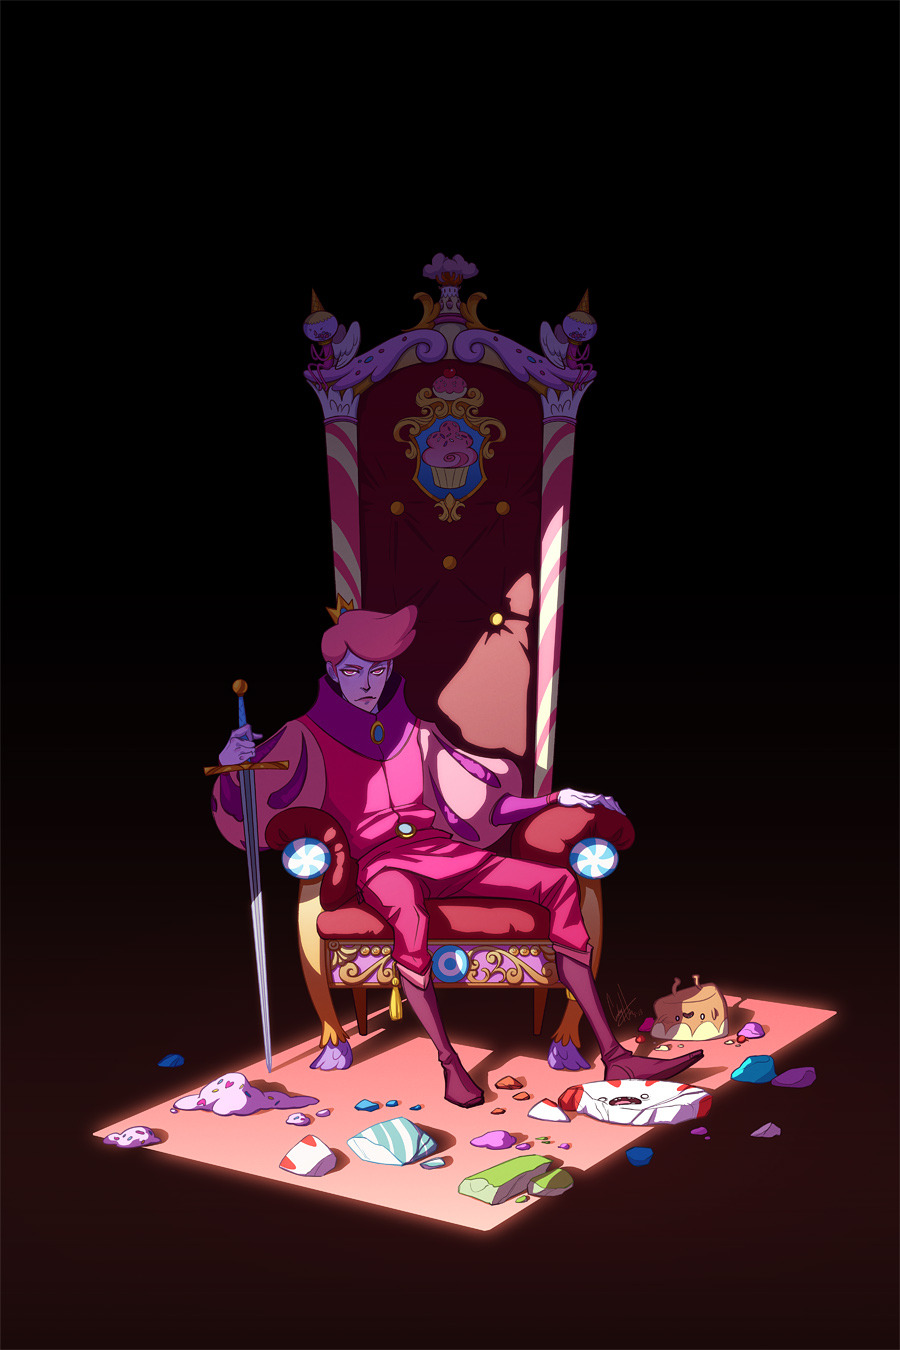 kisskicker:  Prince Gumball's path to the throne was brutal. Fionna wasn't around during the Sugar Wars; Gumball distracts her by acting super bland and wearing disco pants. Marshall Lee knows the truth, but as Chaotic Neutral, he just can't bring himself to give a shit.